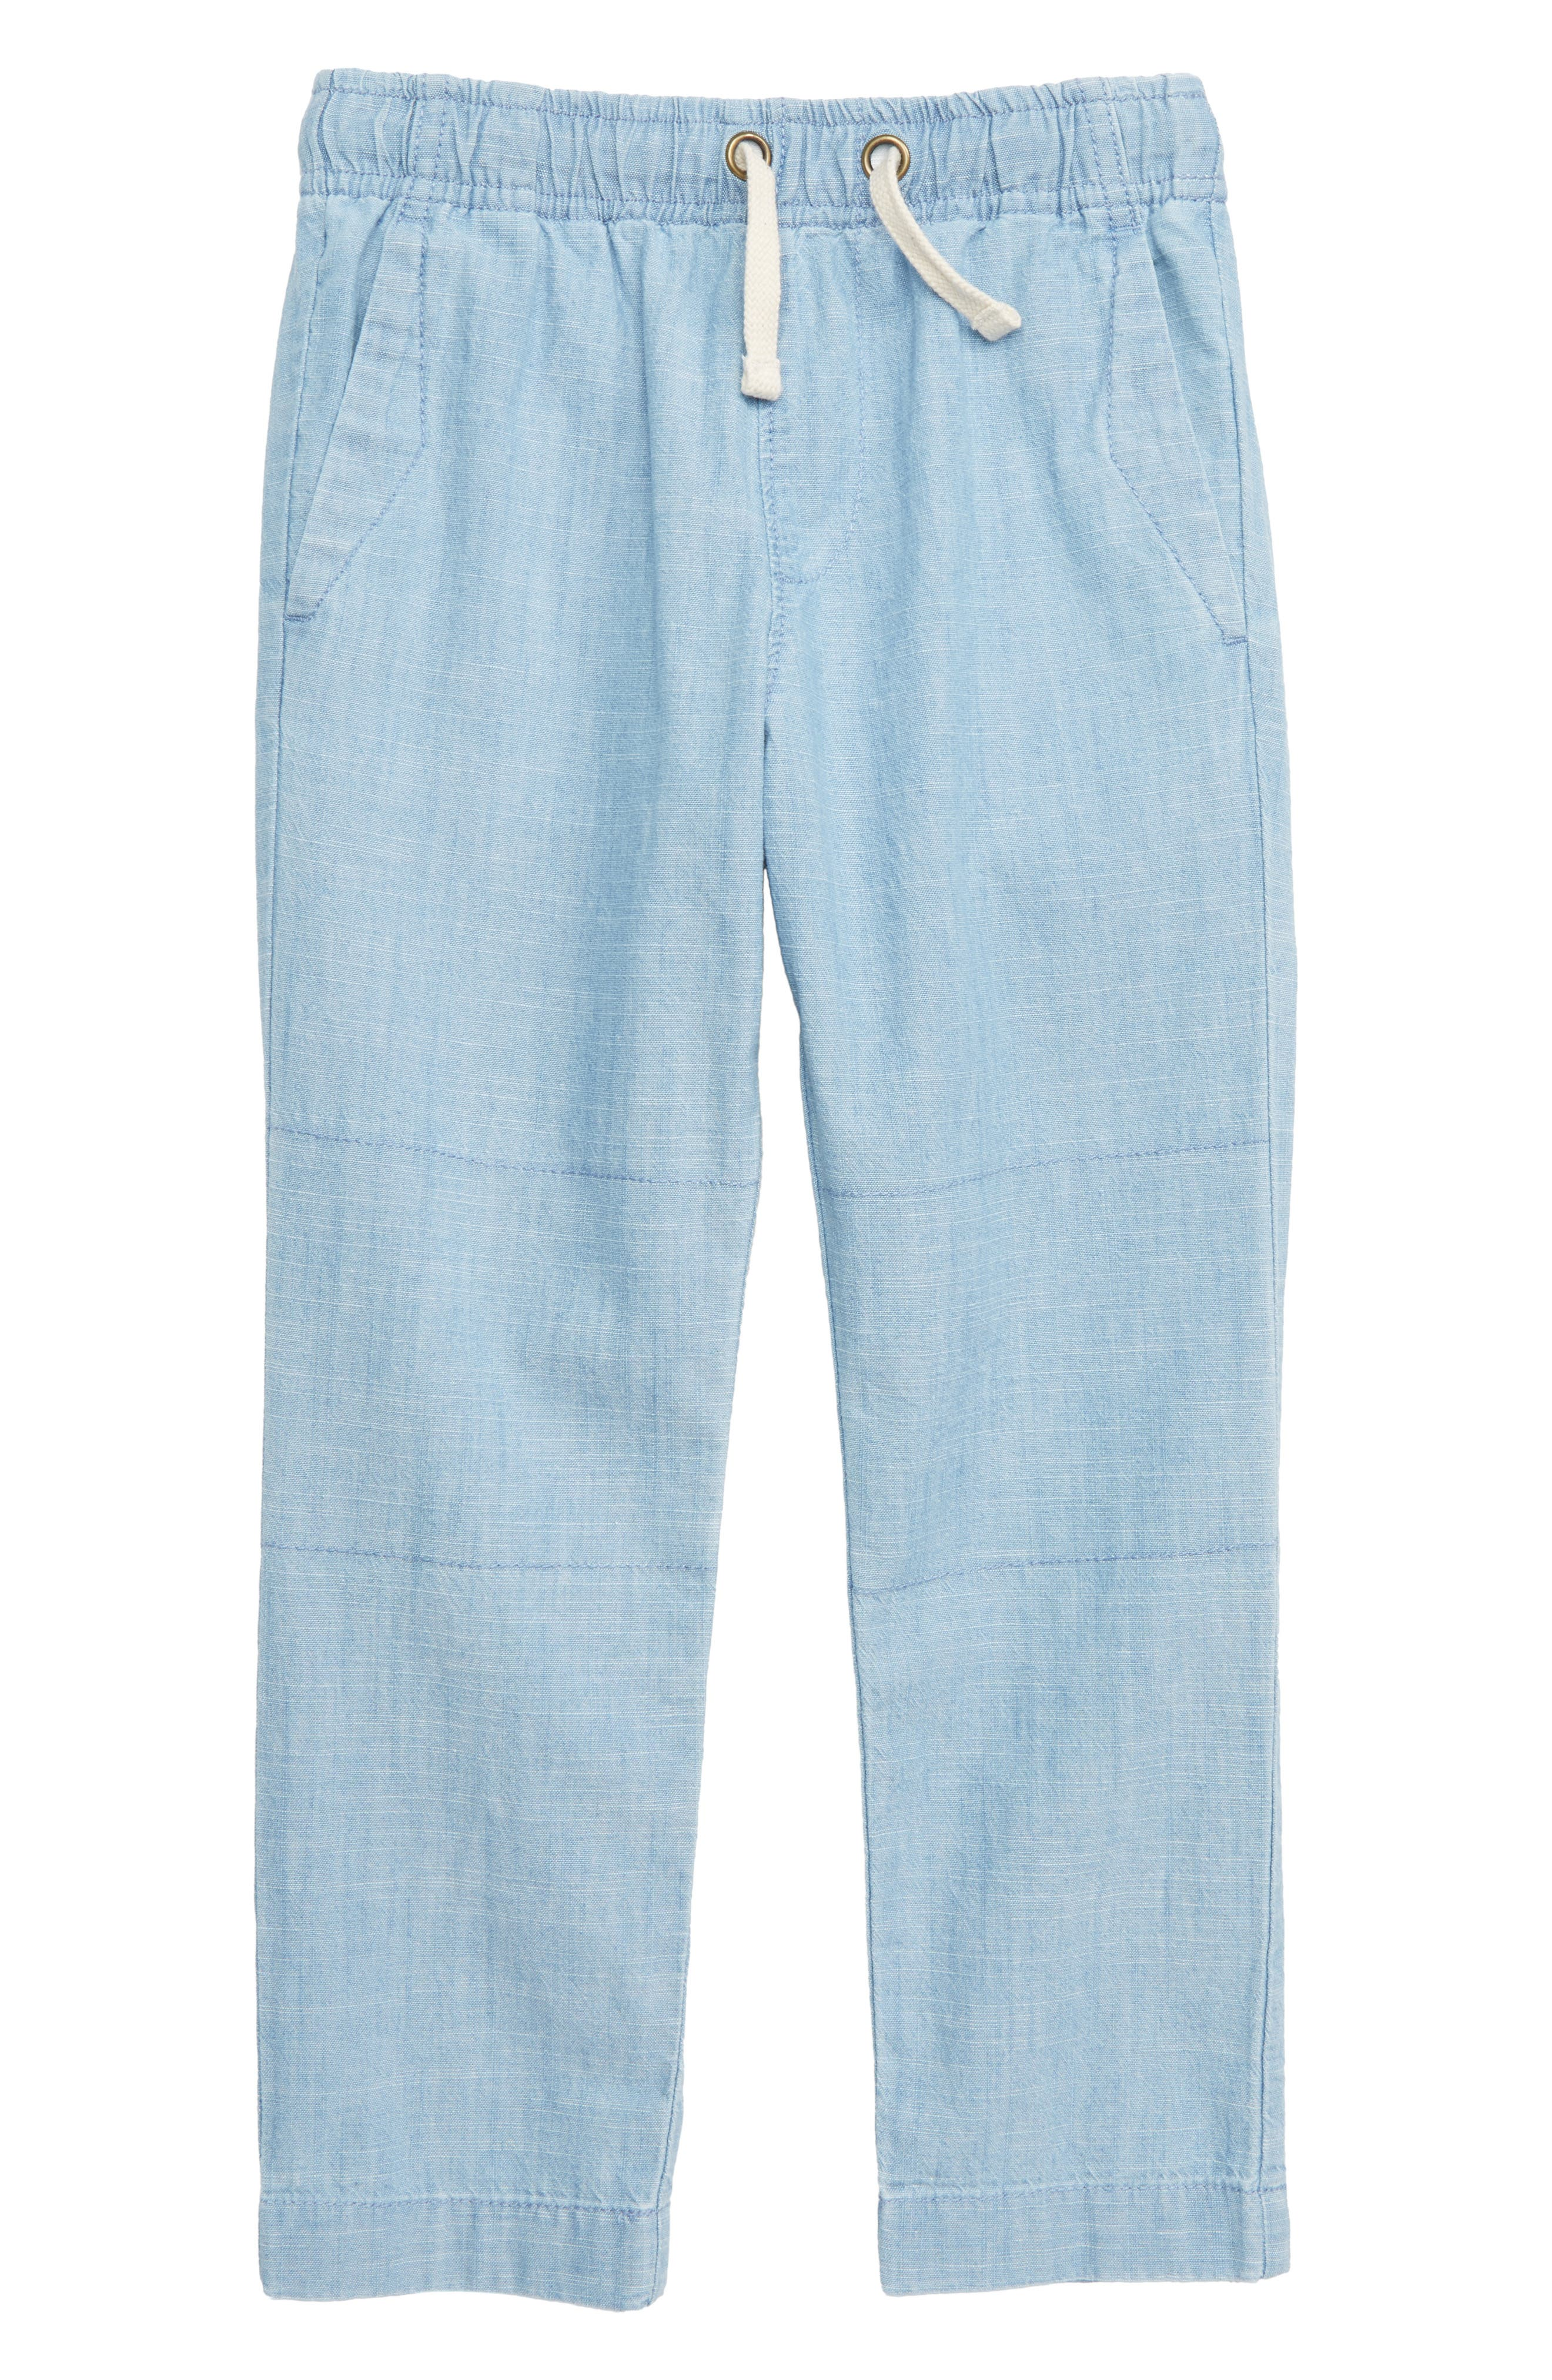 CREWCUTS BY J.CREW Pull-On Chambray Pants with Reinforced Knees, Main, color, MEDIUM CHAMBRAY WASH